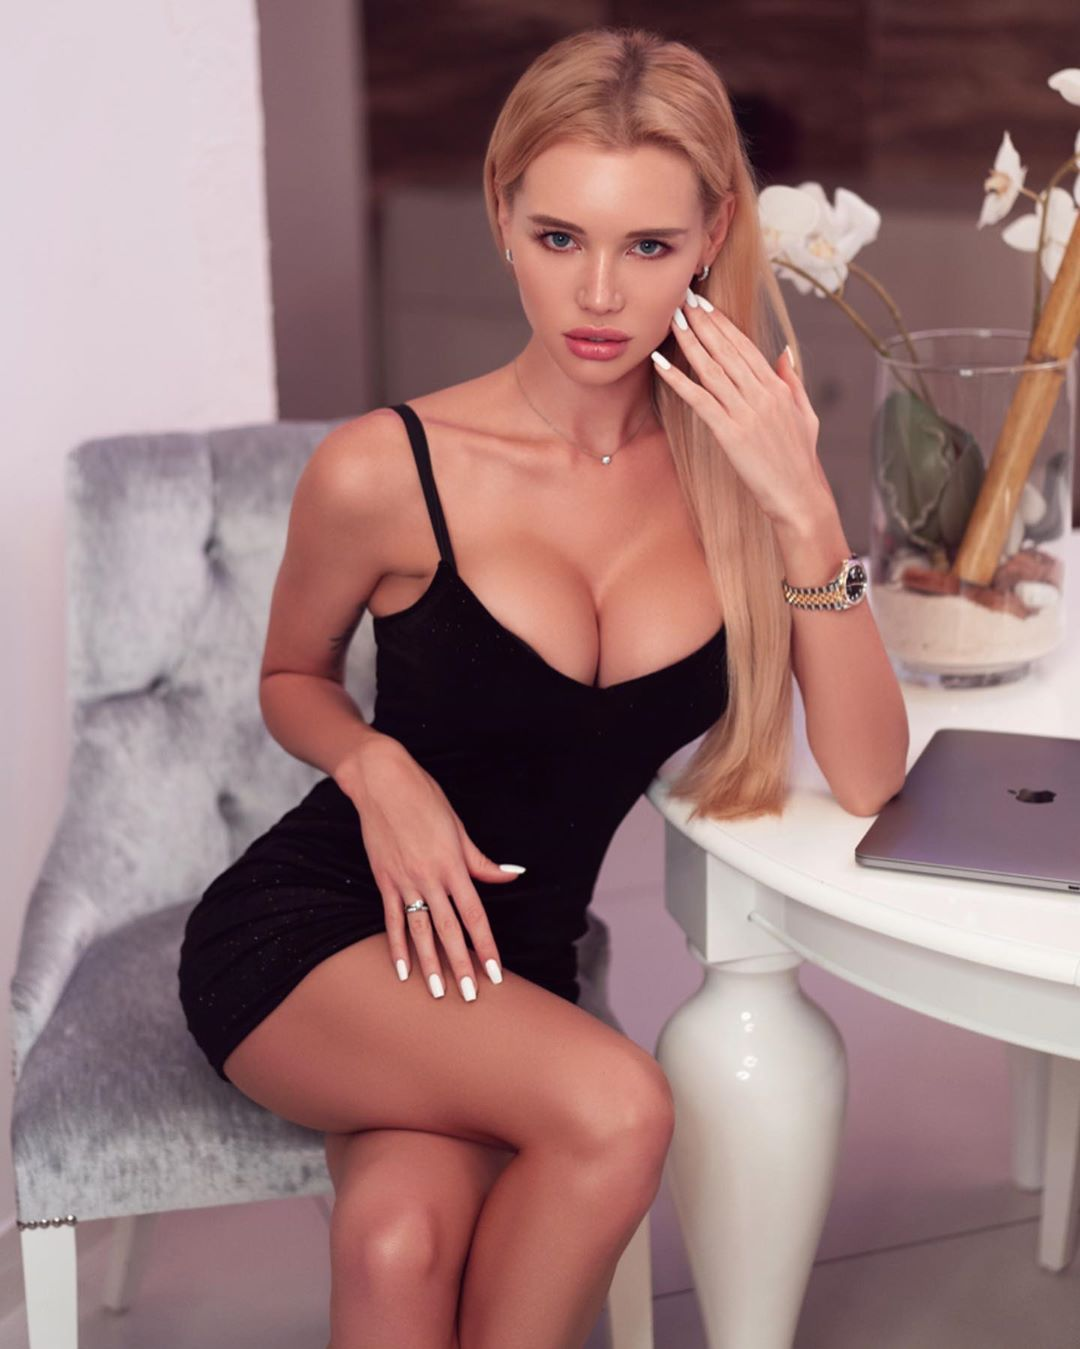 Olya Abramovich Hot Revealing Black Dress - Olya Abramovich Hot Revealing Black Dress